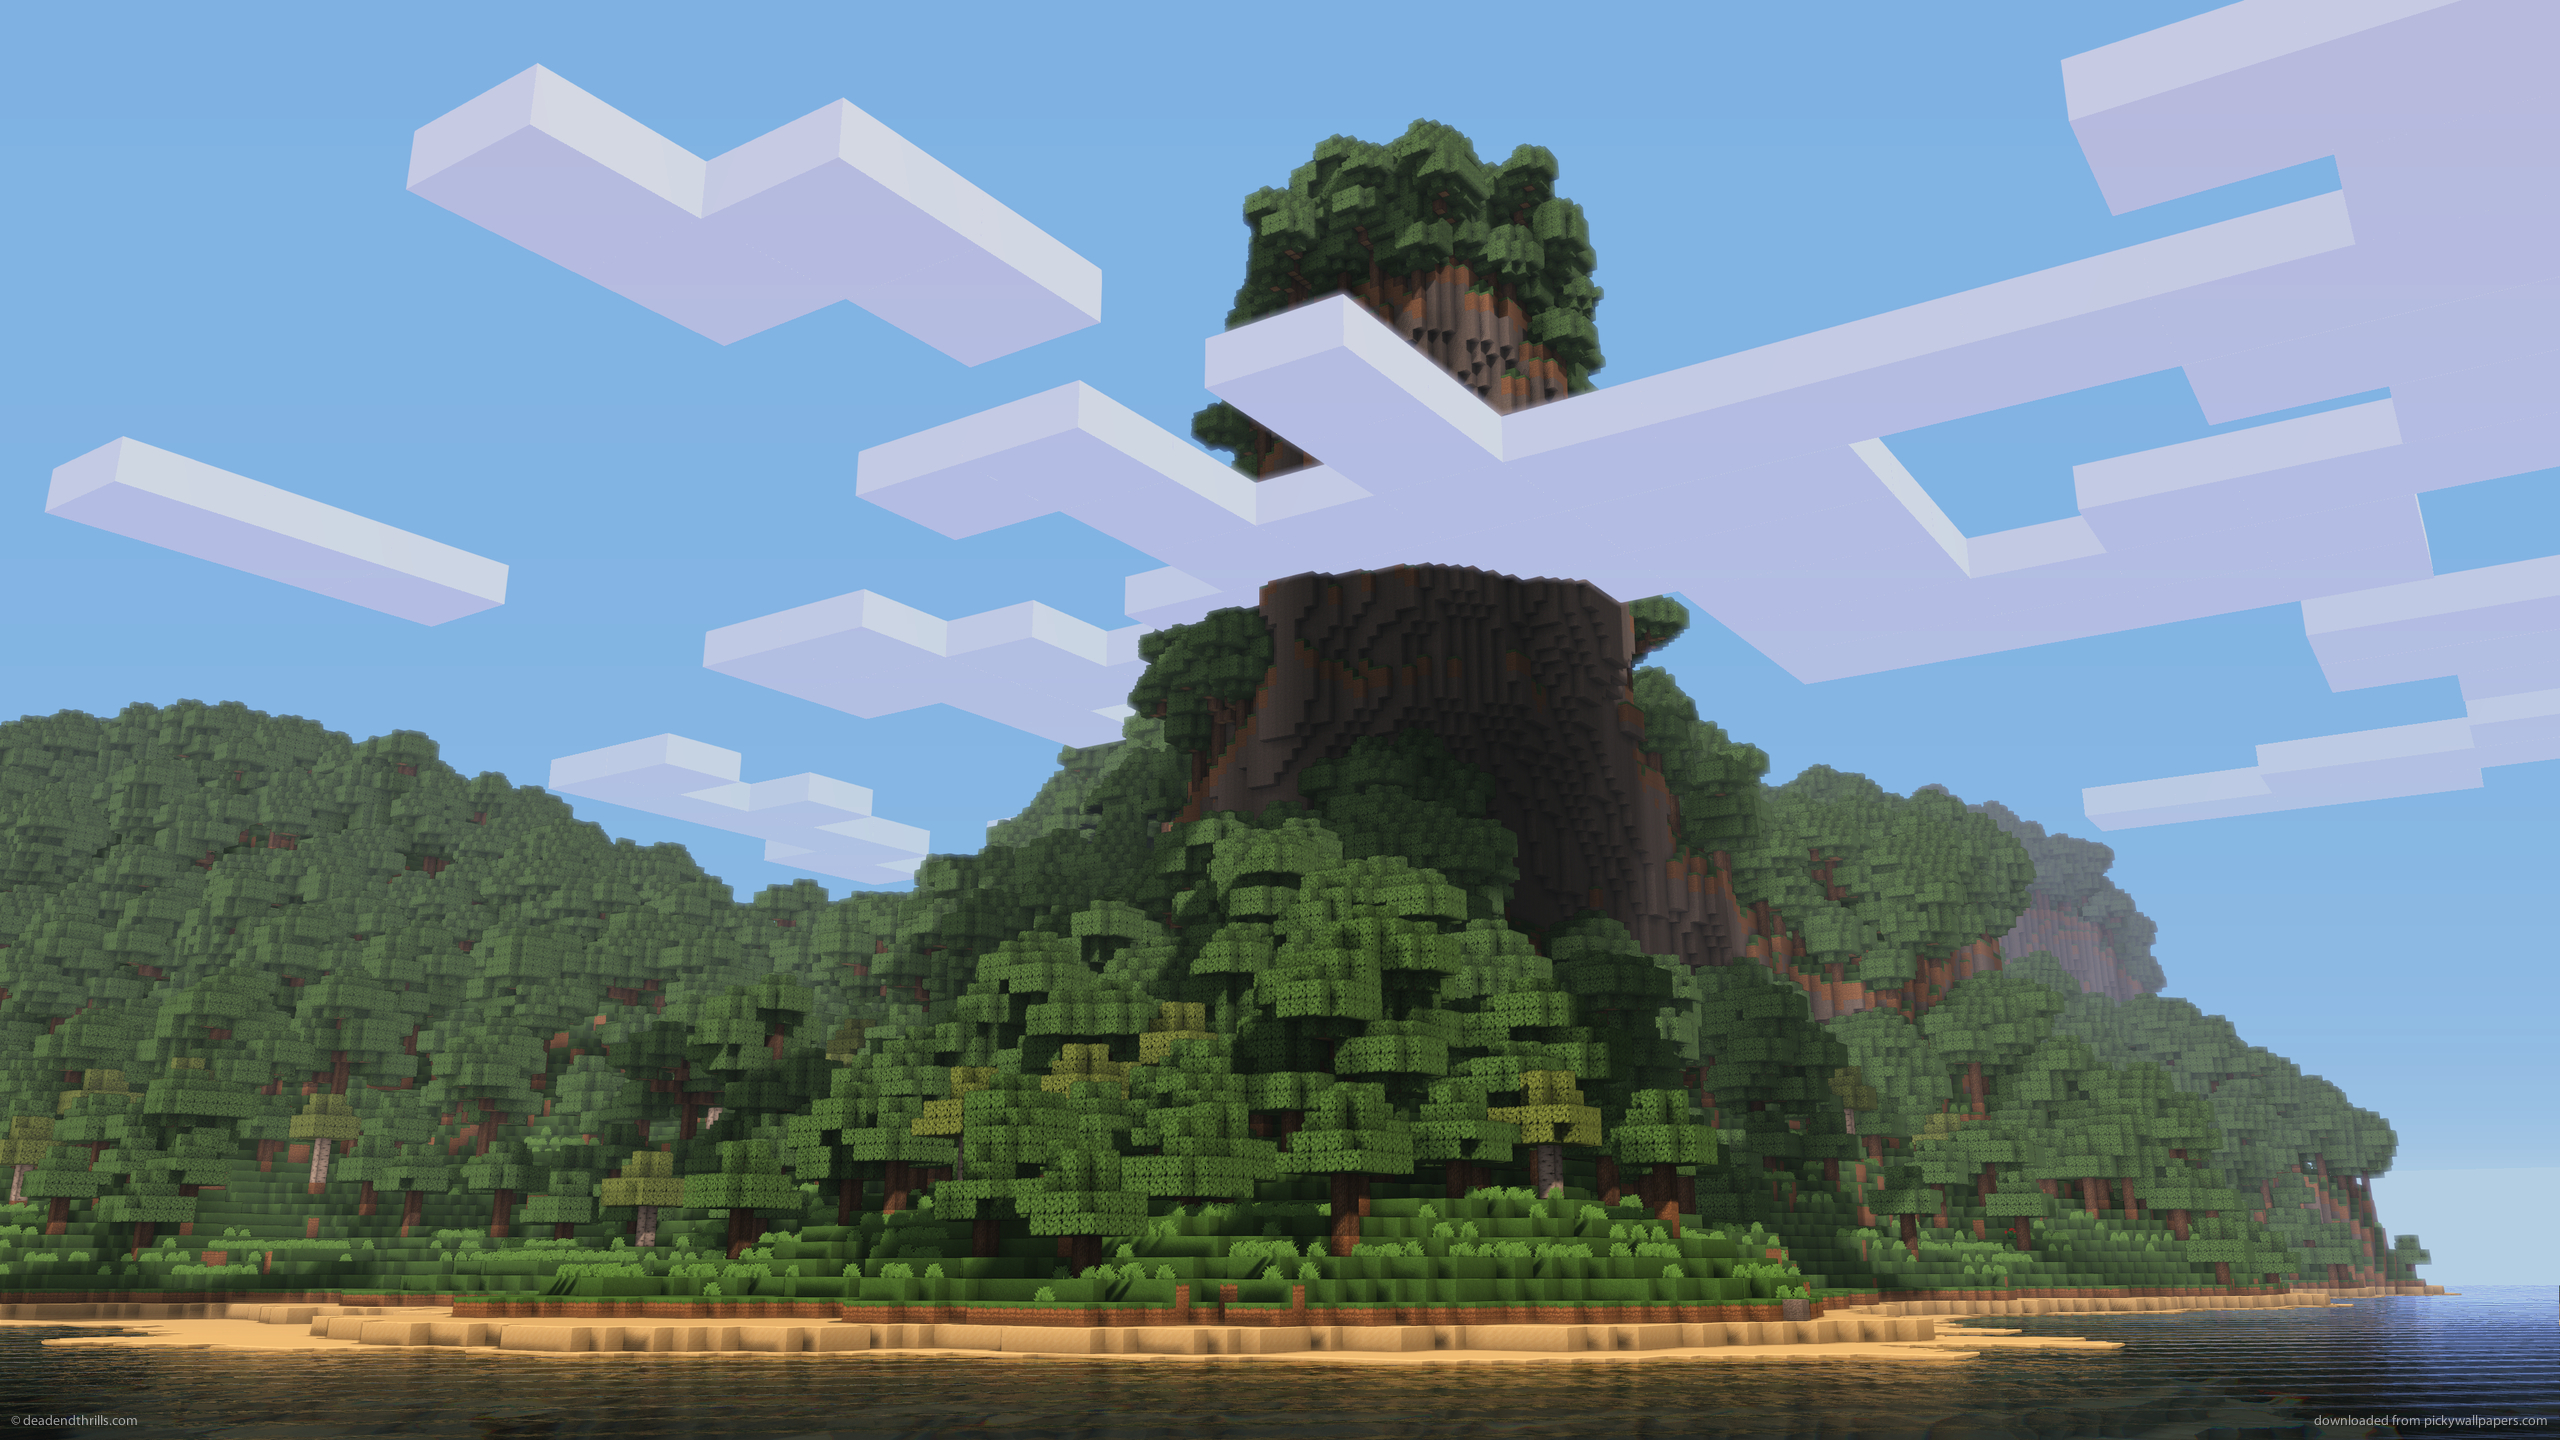 2560x1440 Minecraft Wallpaper Link to this wallpaper 2560x1440